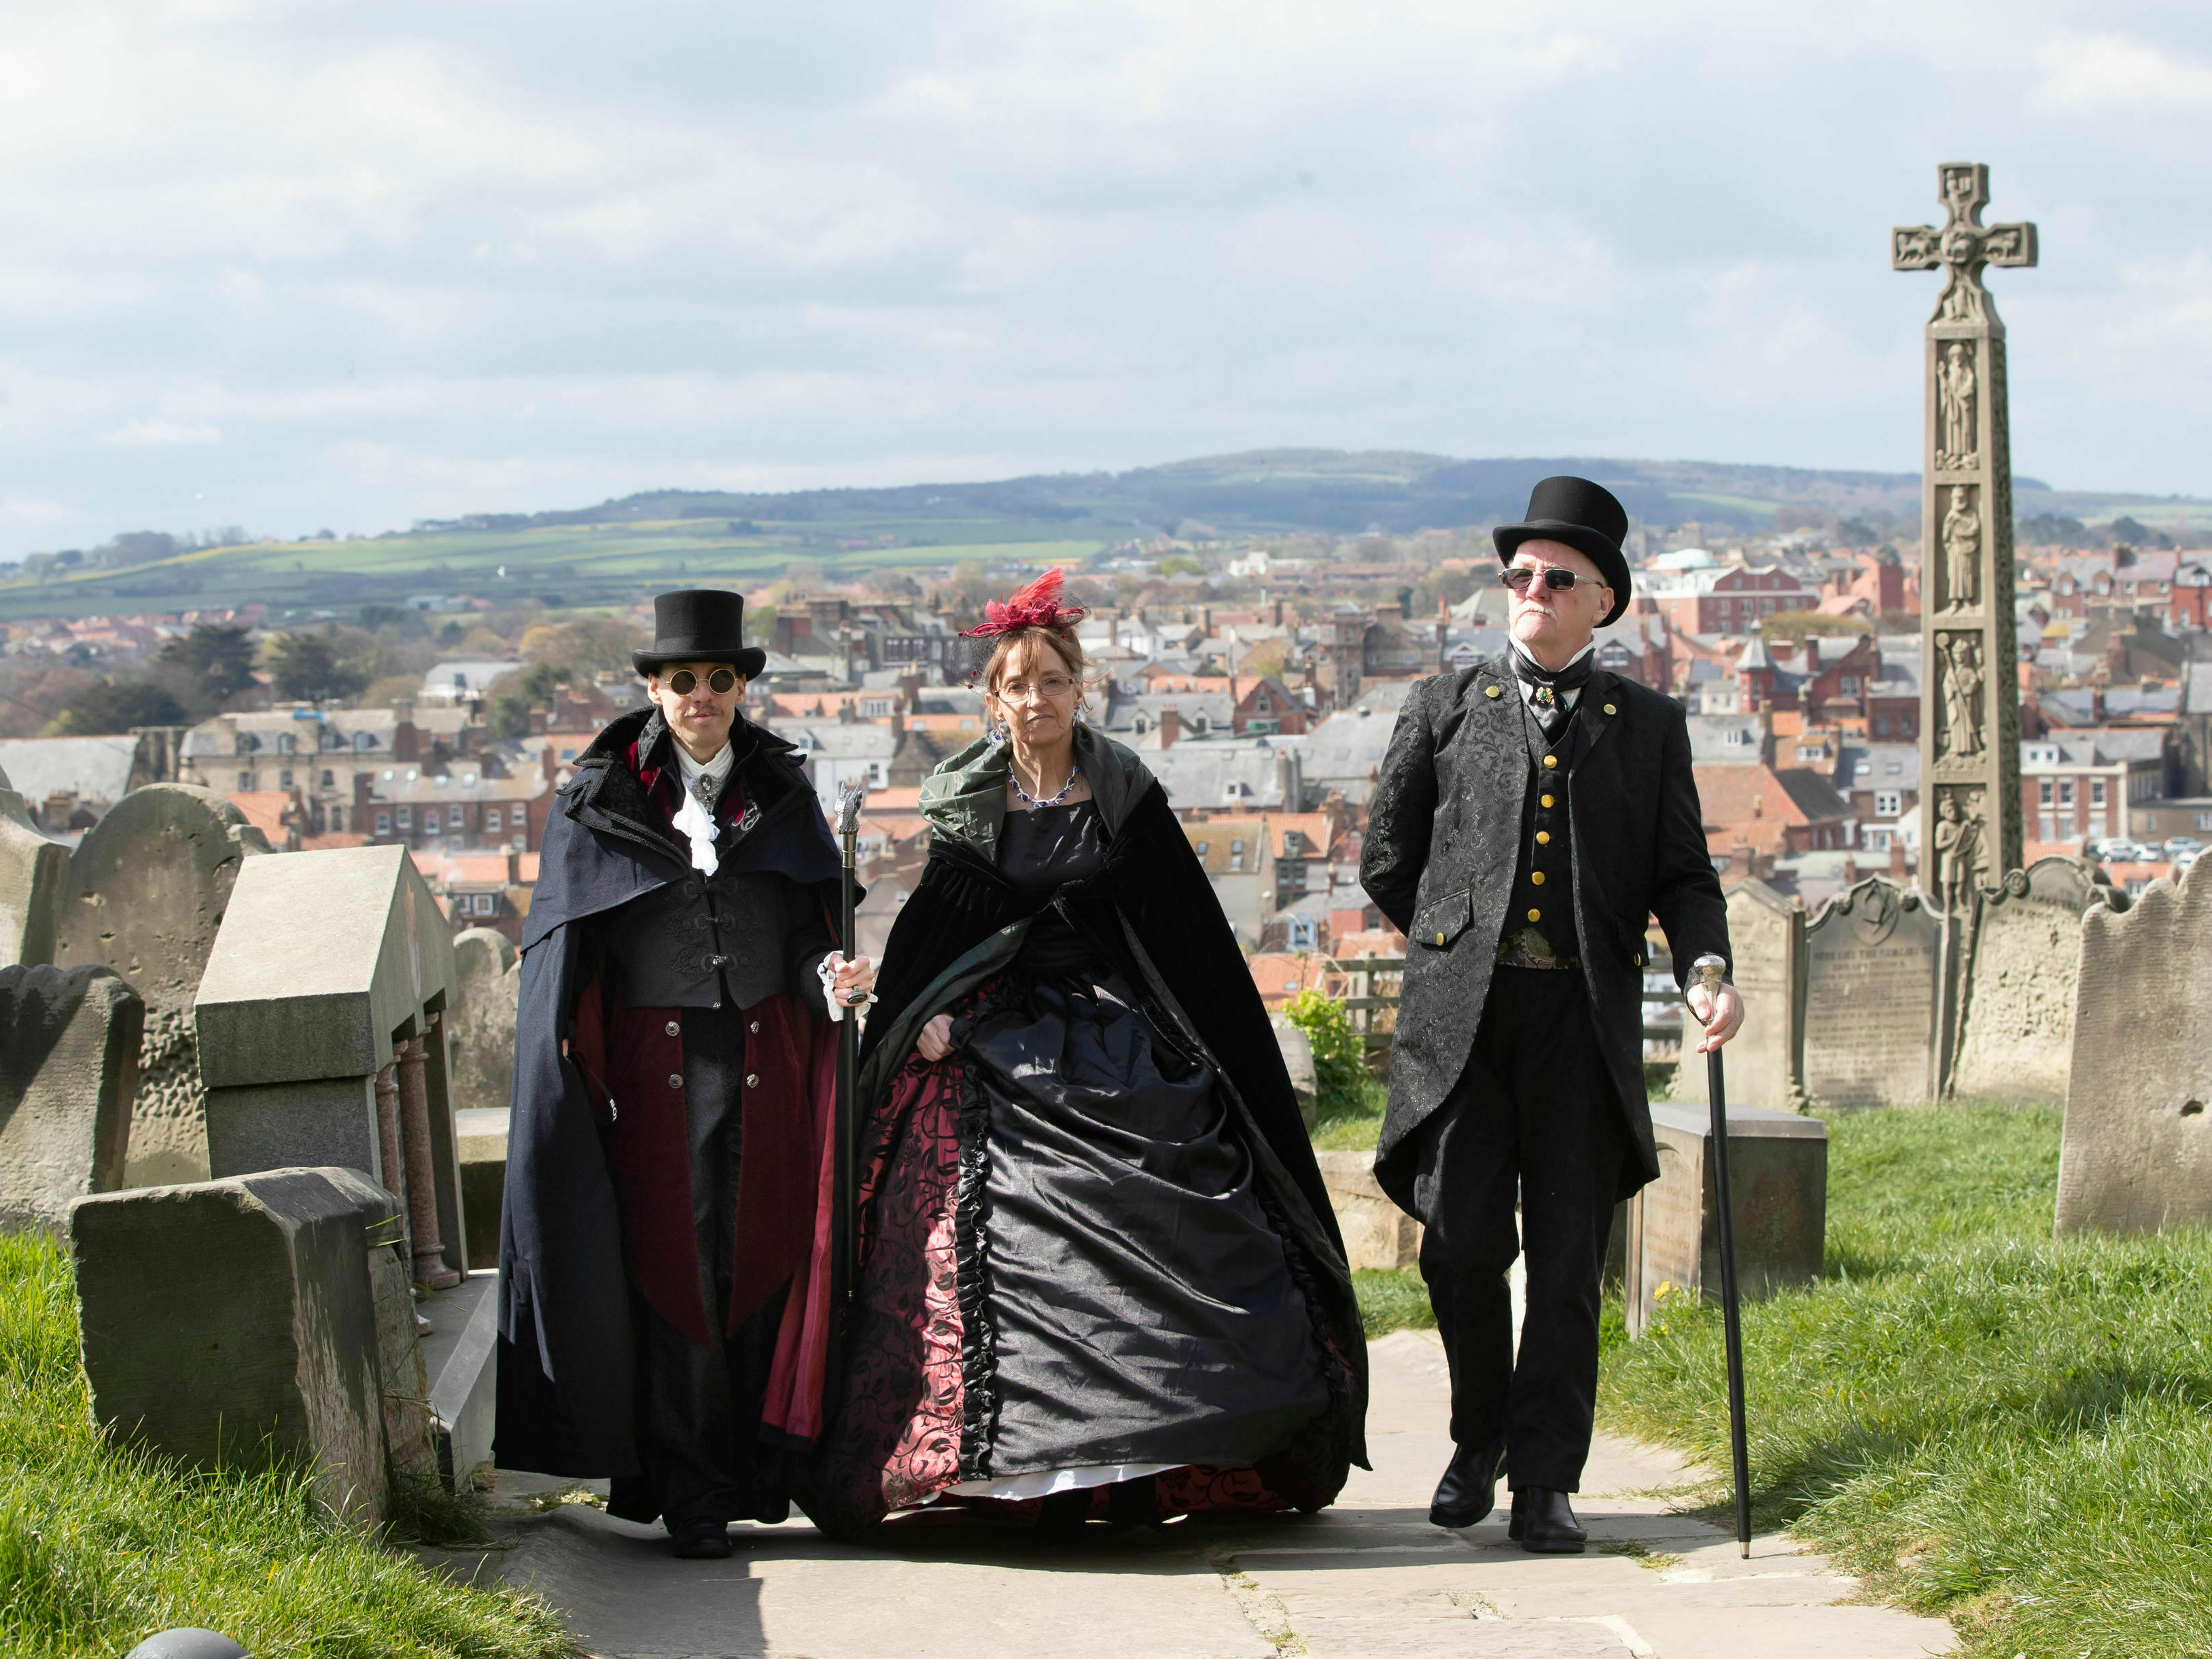 People attend the Whitby Goth Weekend in Whitby, north England, Friday April 12, 2019, where Bram Stoker reputedly found some of his inspiration for the 'Dracula' story after staying in the town in 1890. The Whitby Goth Weekend is a twice-yearly alternative music festival which has grown to be one of the world's most popular goth events attracting attendees from across the globe.